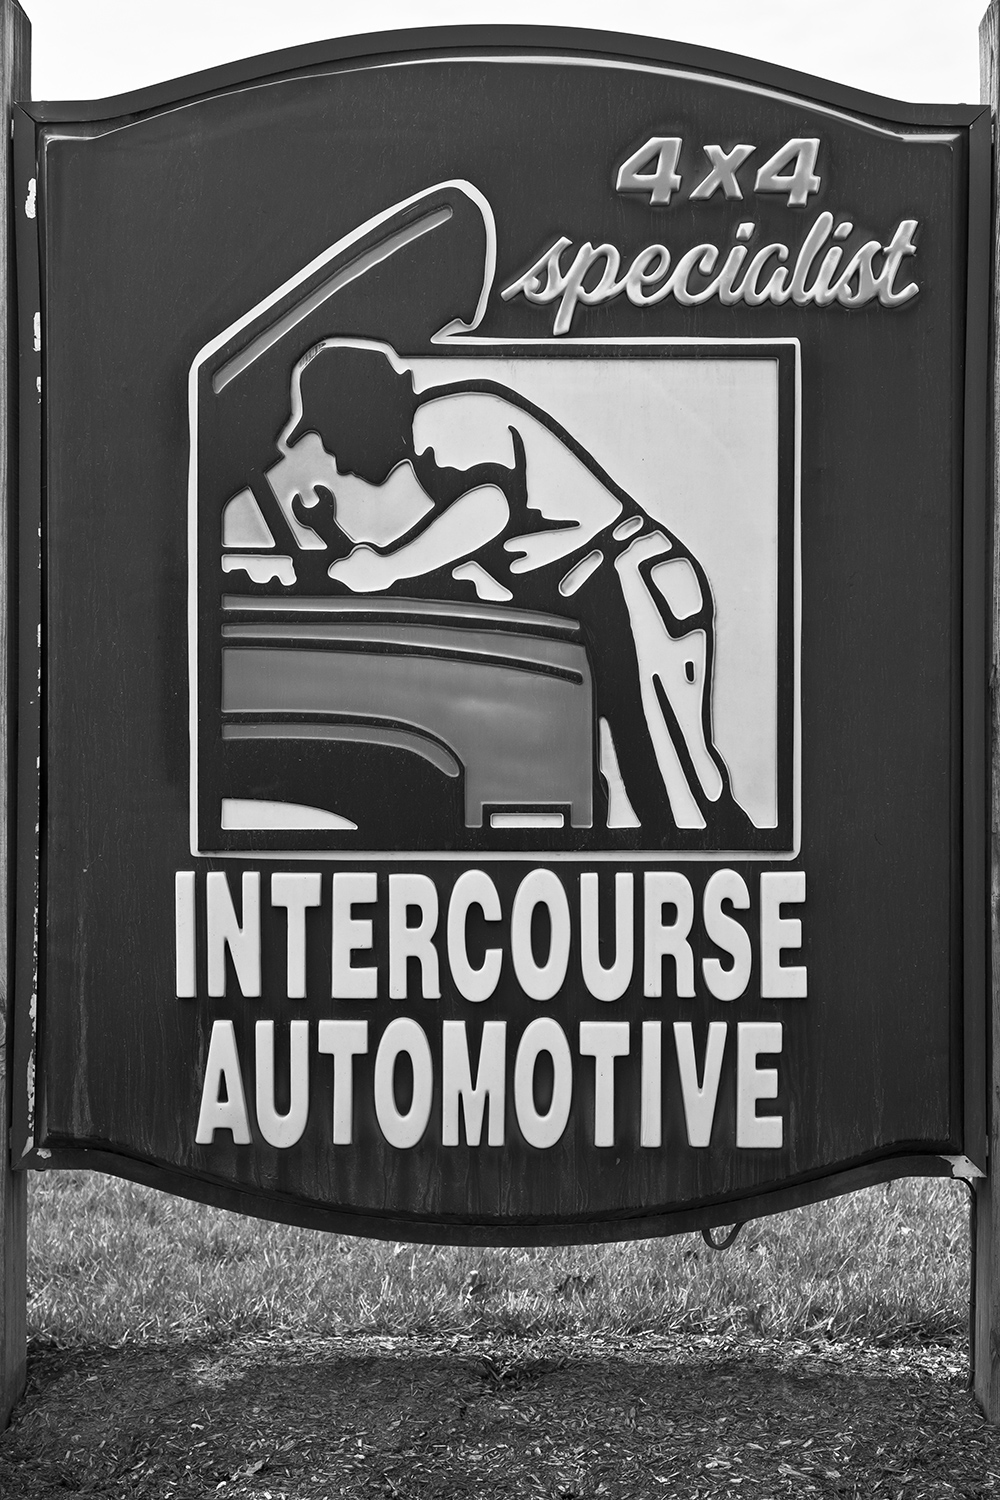 Intercourse Automotive